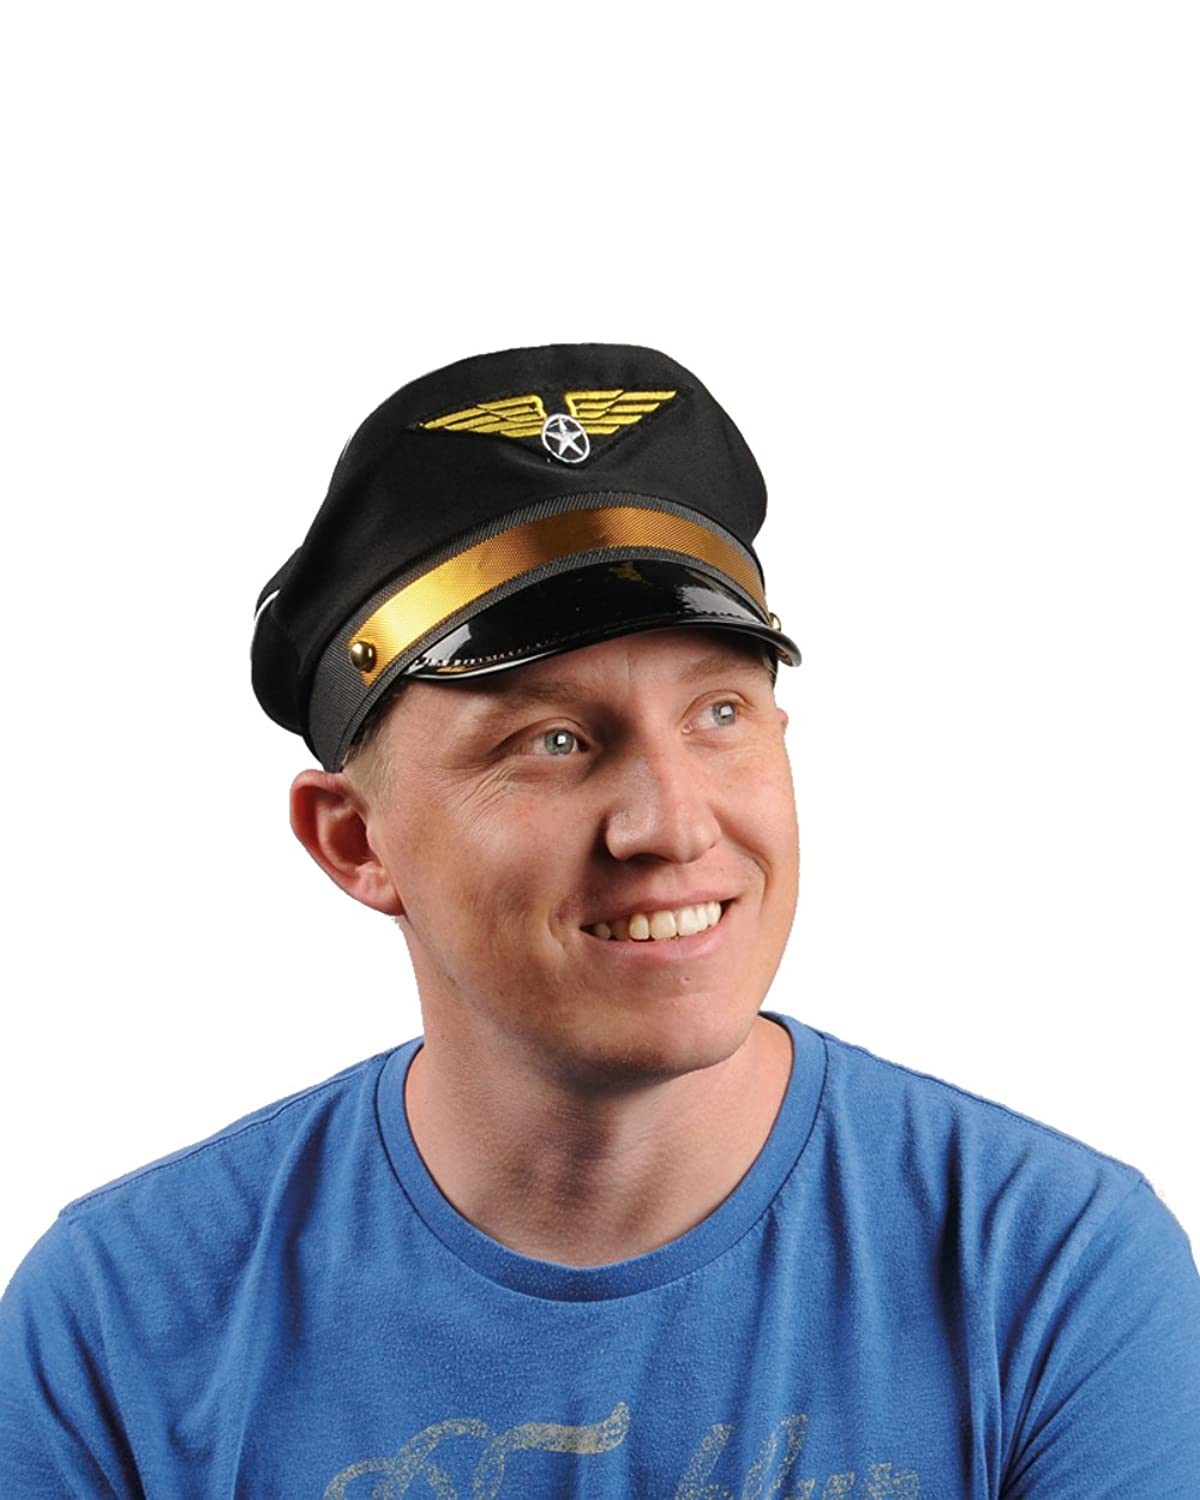 Pilot Hat Amazon Pilot Hat Cap Costume